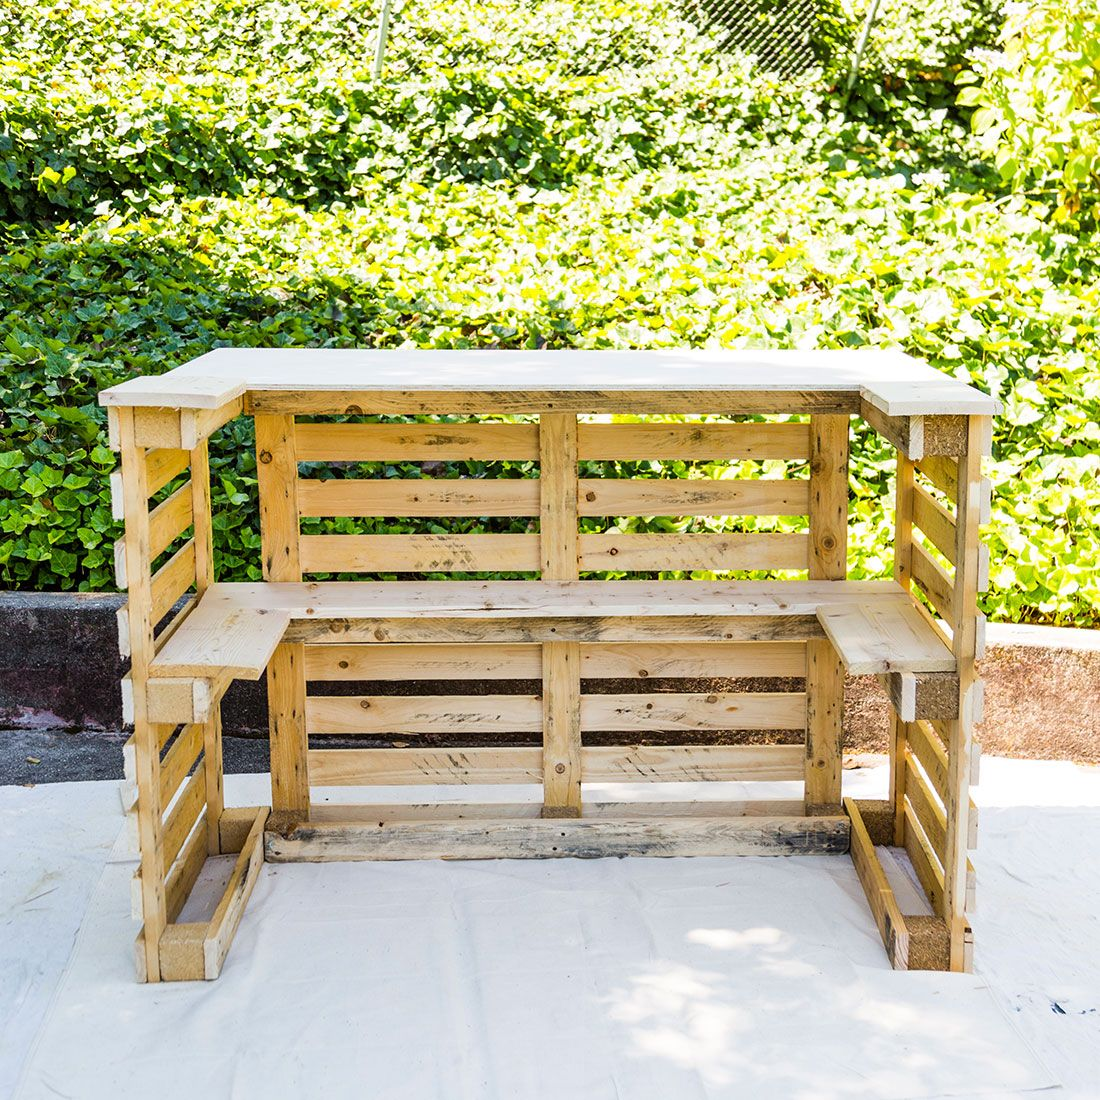 DIY This Pool Bar Made from Pallets to Step Up Your Backyard Game ...